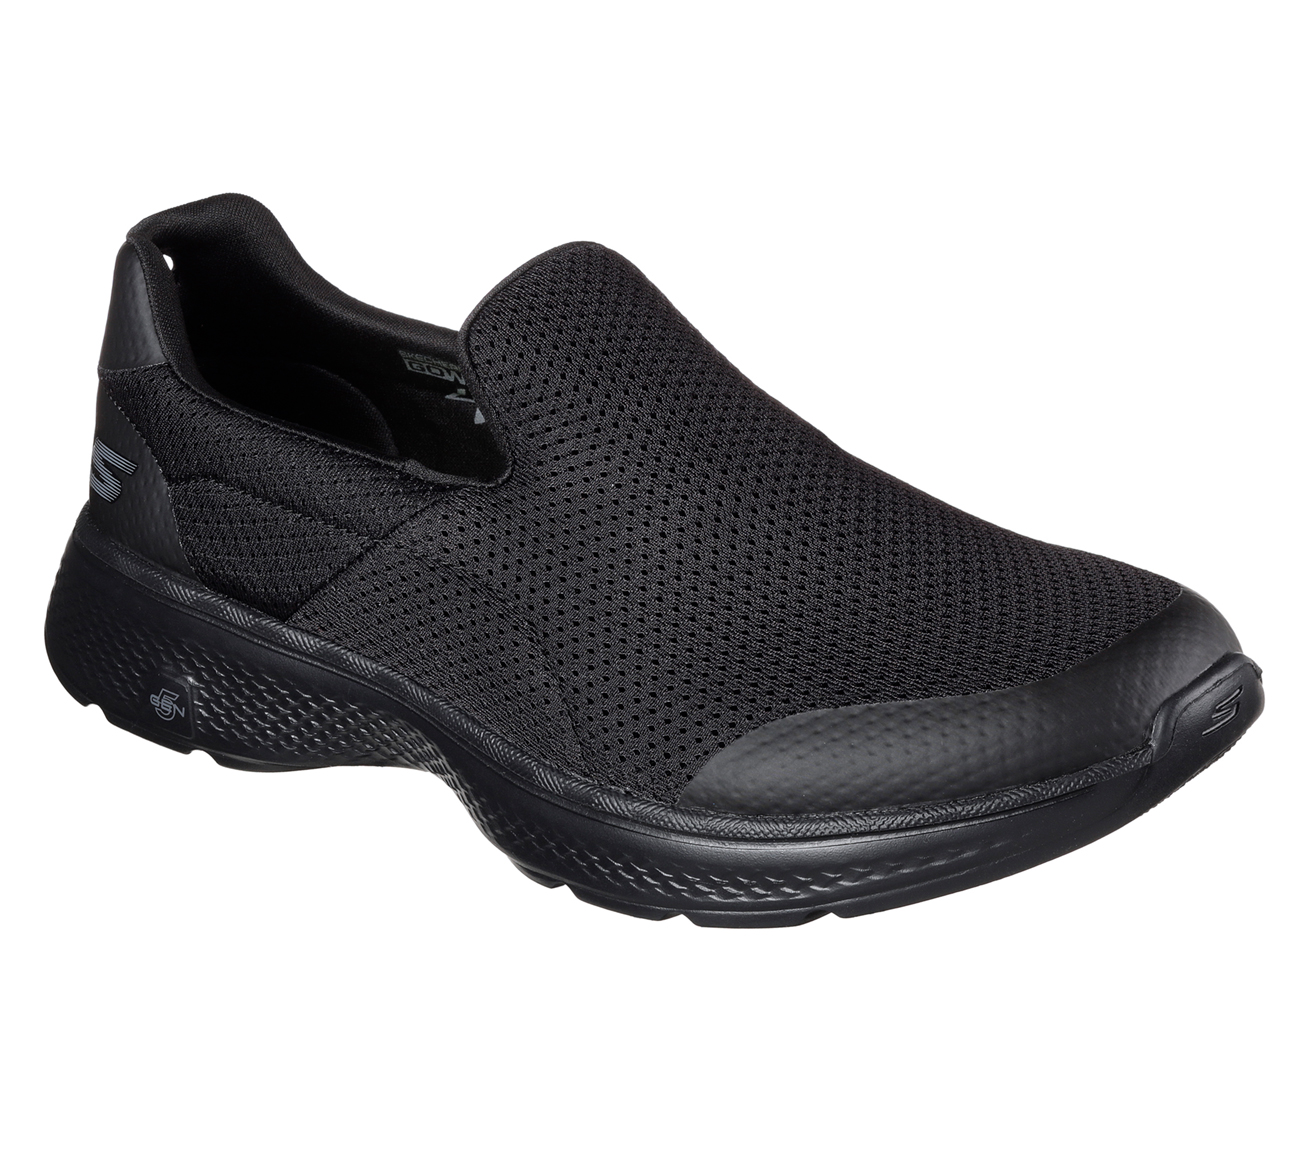 Buy SKECHERS Skechers GOwalk 4 - Incredible Skechers ...